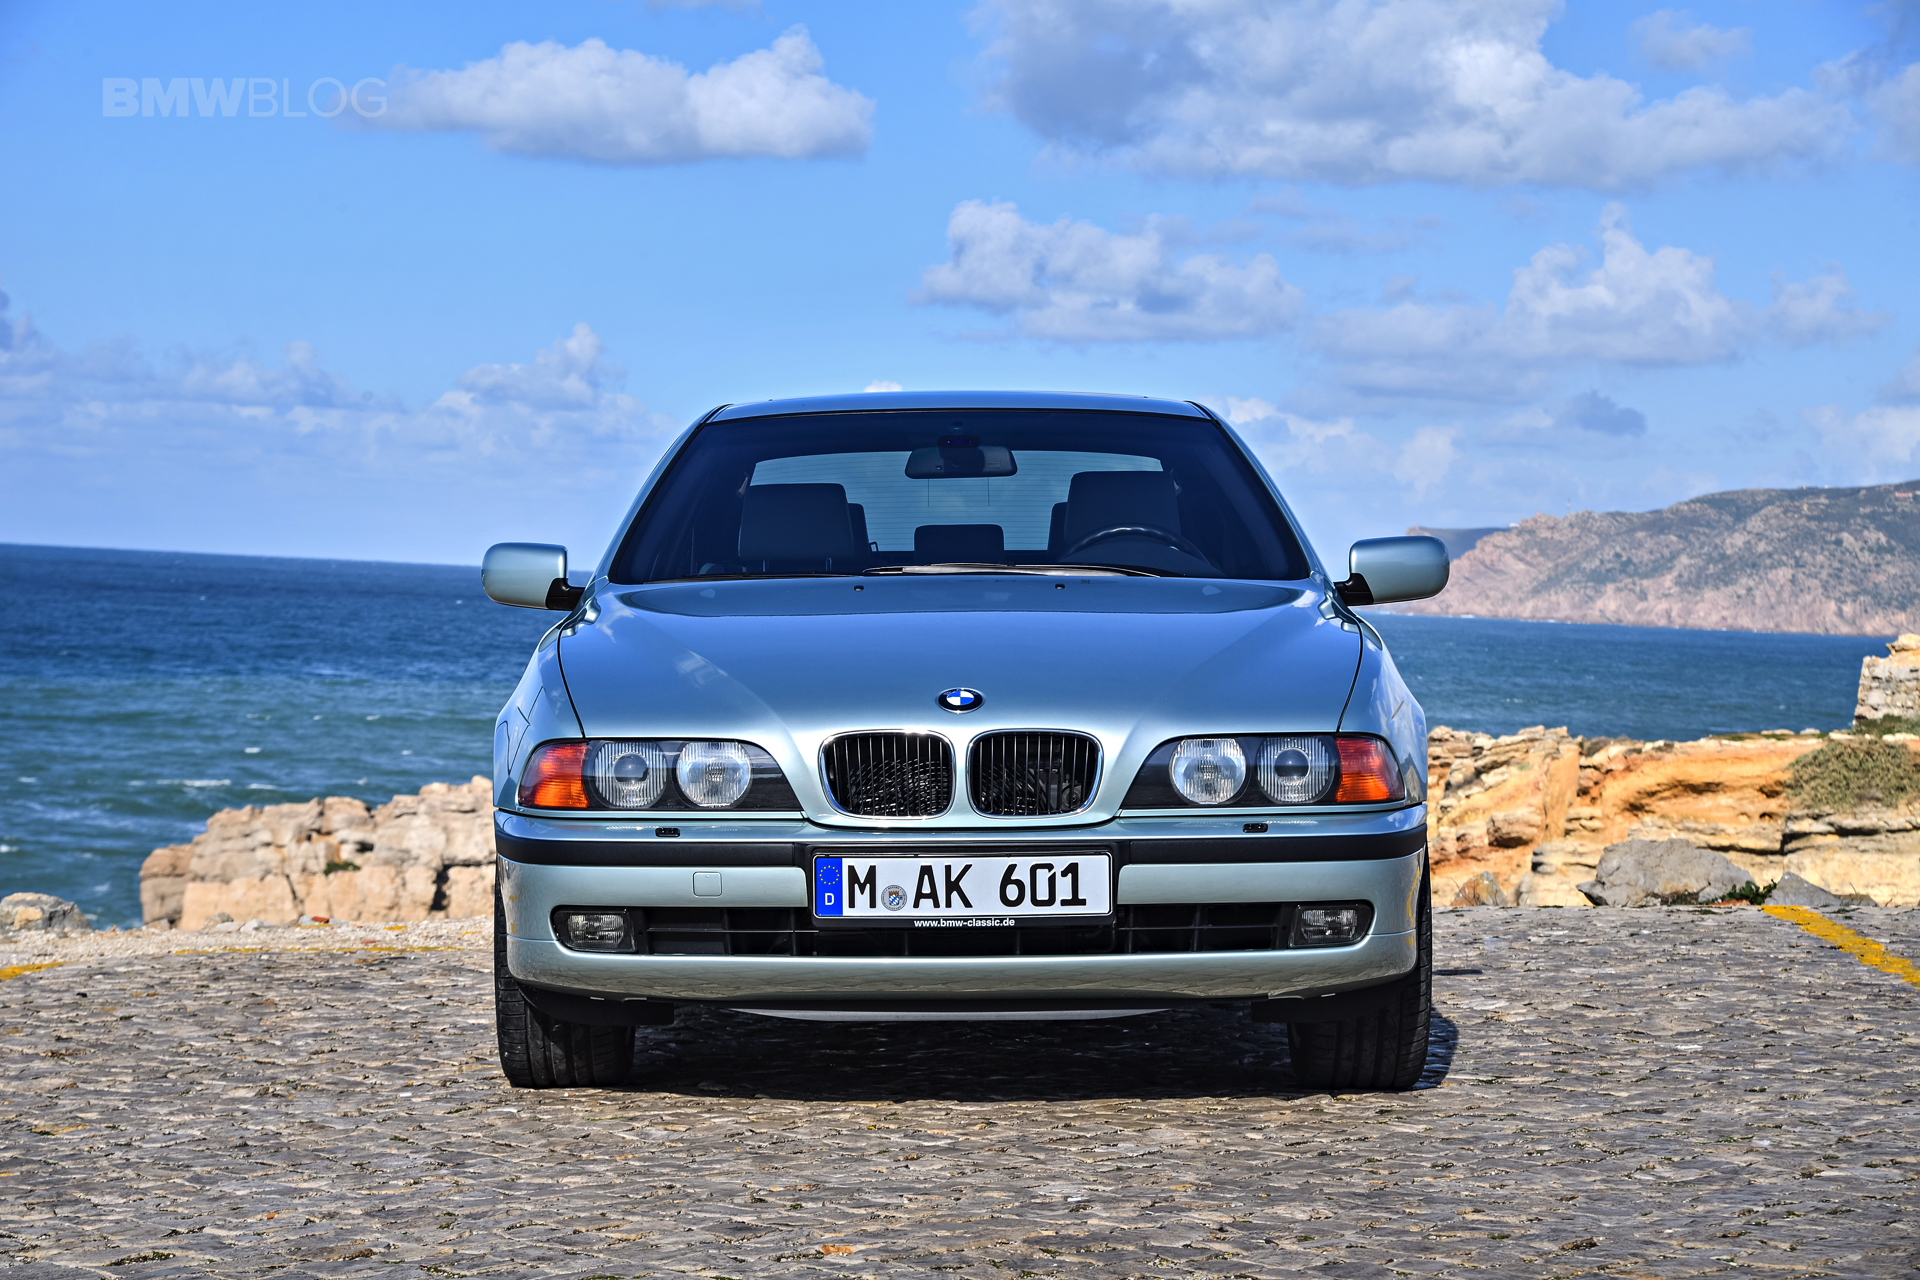 VIDEO: See What Can Go Wrong with a Super Cheap E39 BMW 5 Series